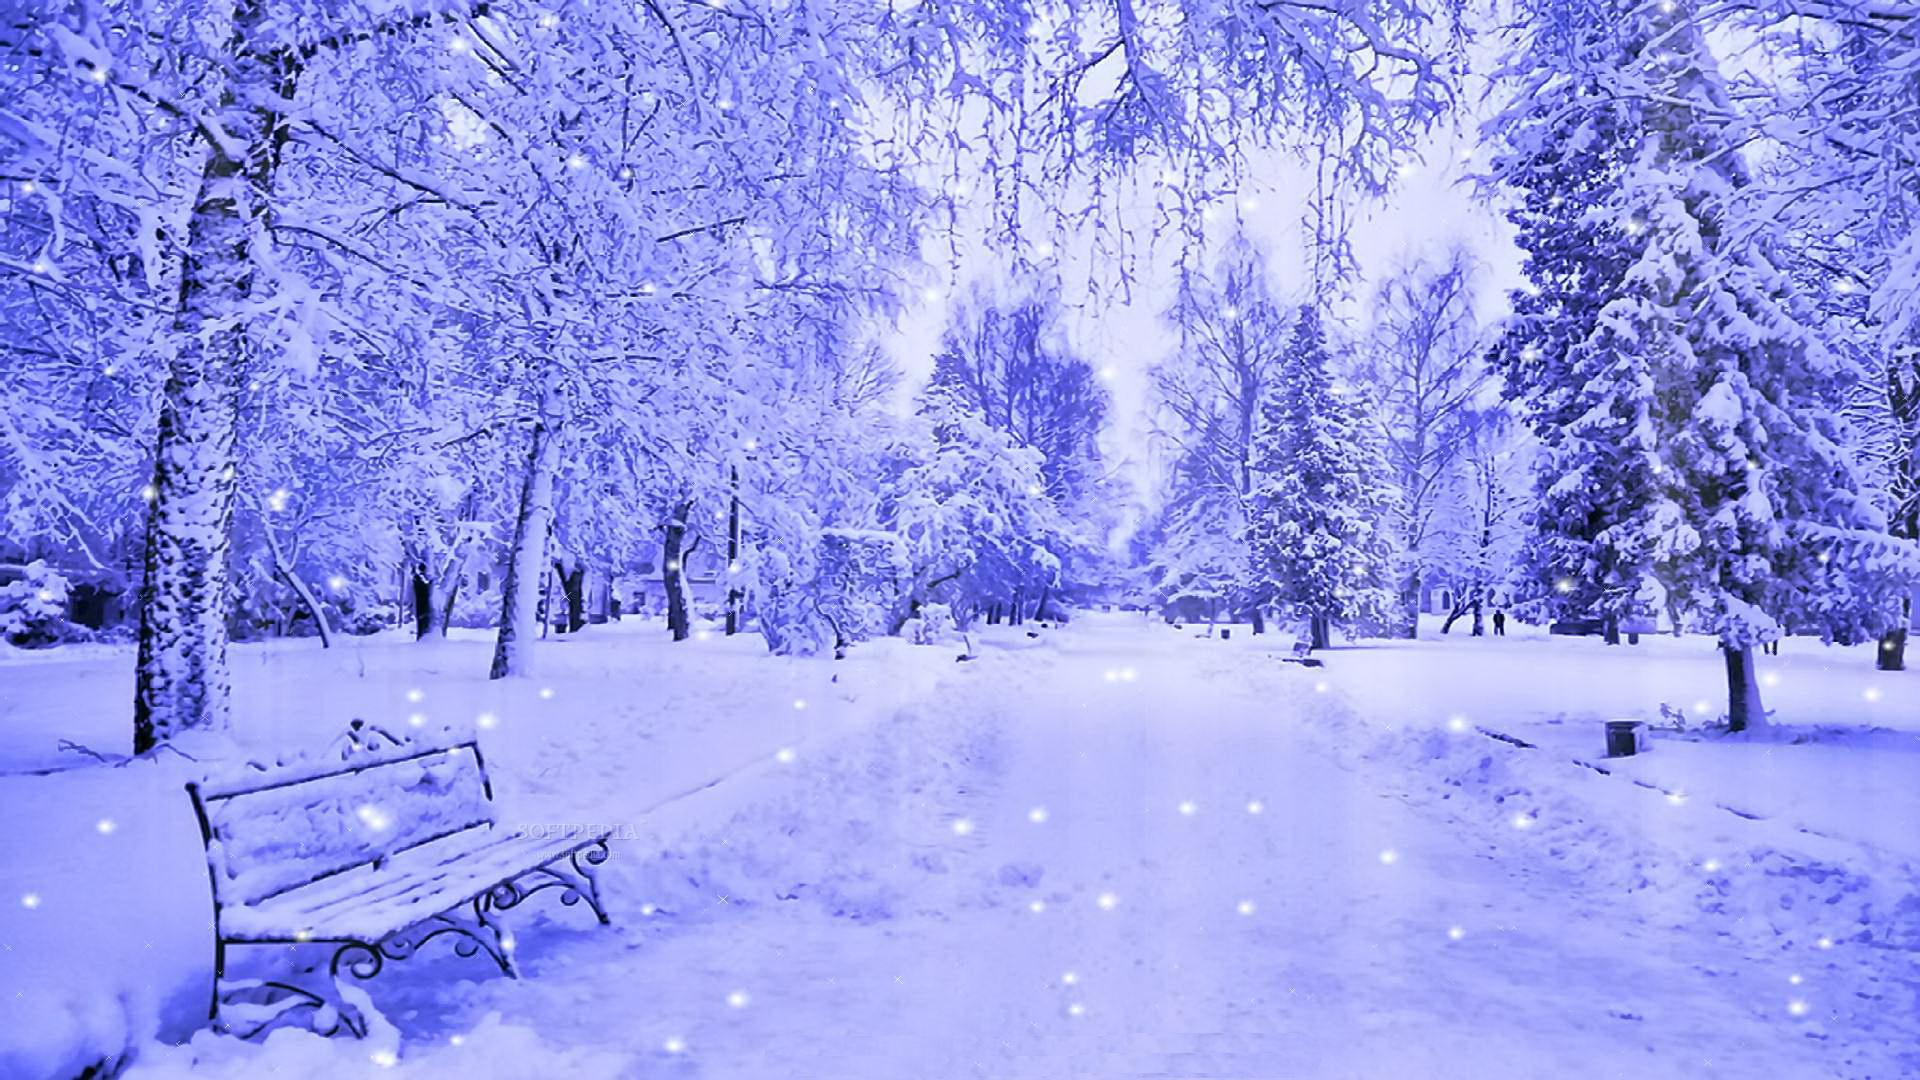 Snow Wallpapers Wallpaper High Definition High Quality Widescreen